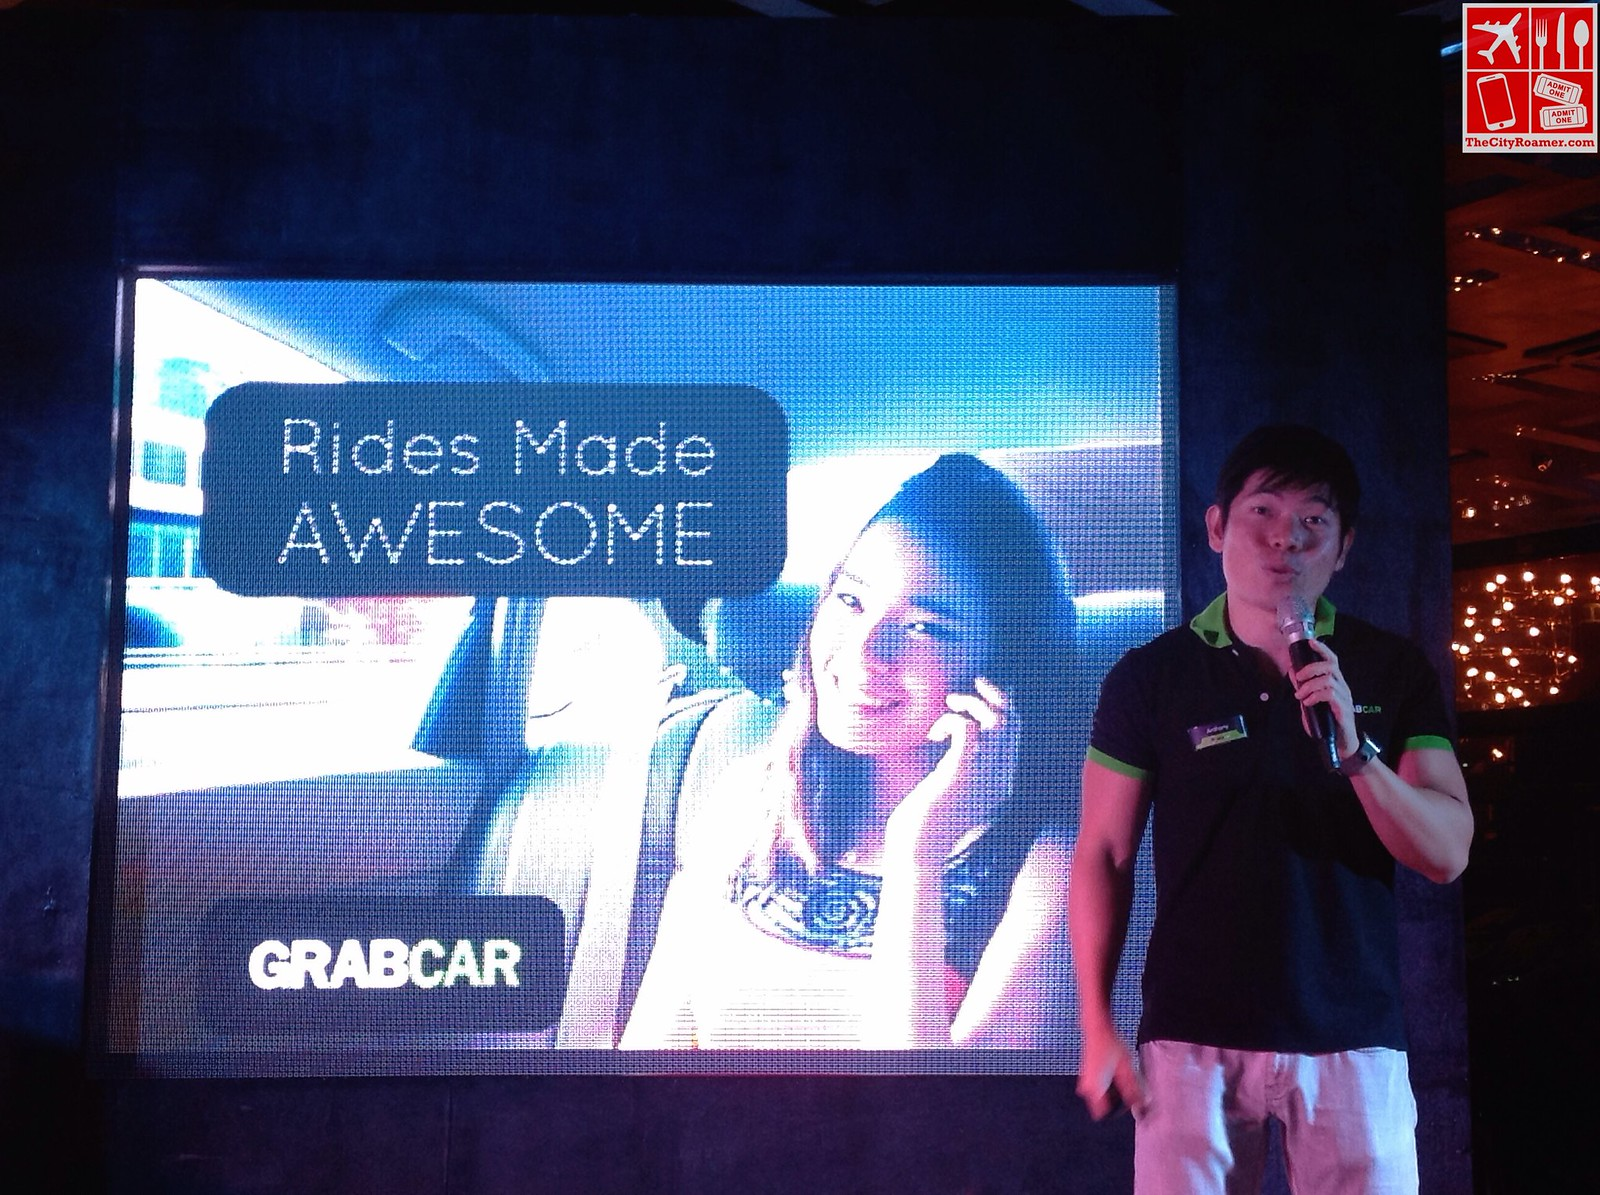 GrabTaxi CEO Anthony Tan discusses GrabCar at the Media Launch